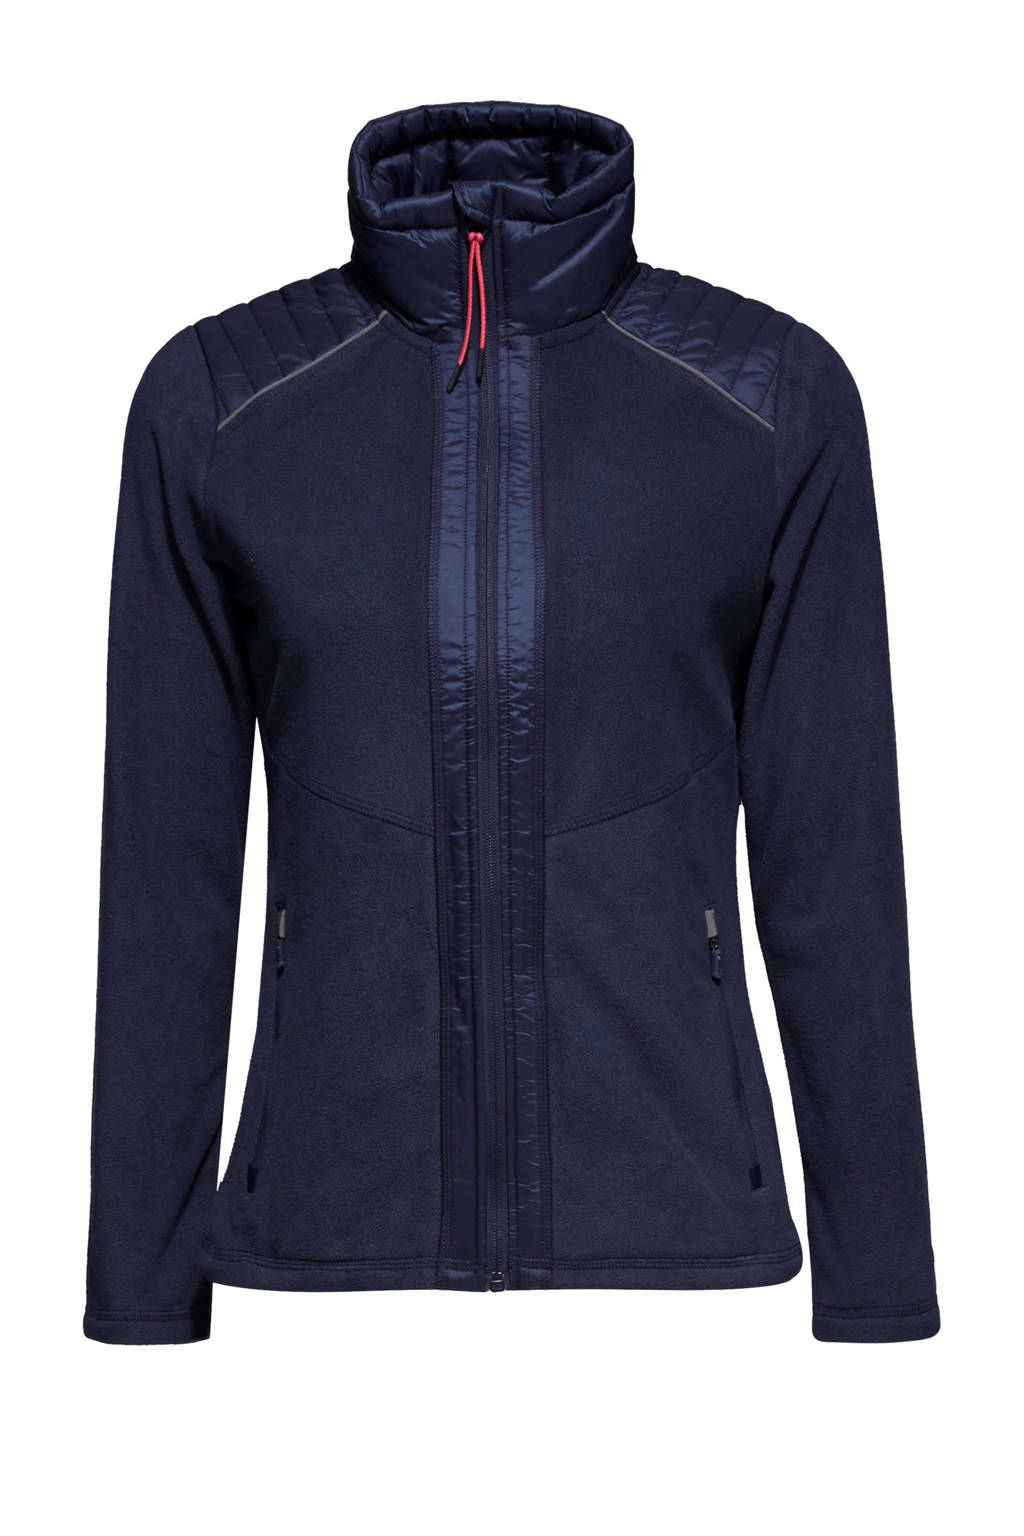 ESPRIT Women Sports fleece sportvest, Donkerblauw